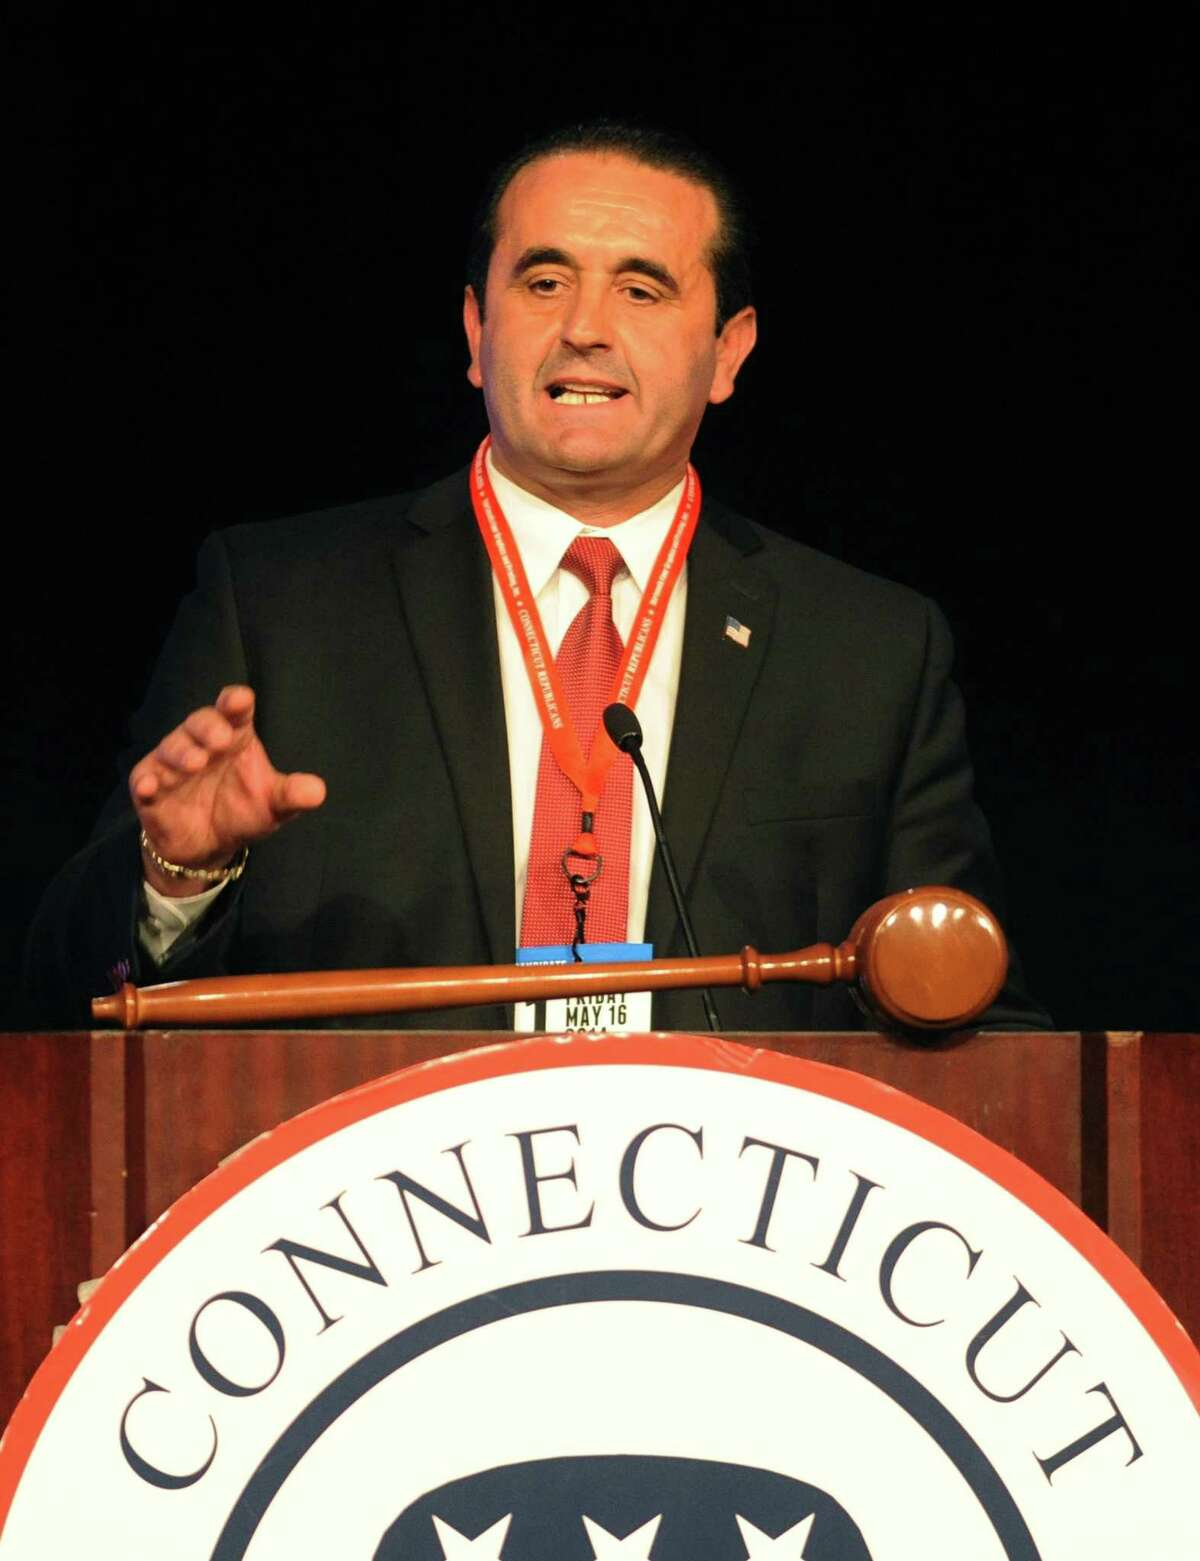 Peter Lumaj gives a speech after being selected as the Republican candidate for Secretary of the State at the Connecticut Republican Convention at the Mohegan Sun Uncas Ballroom in Uncasville, Conn. Friday, May 16, 2014.